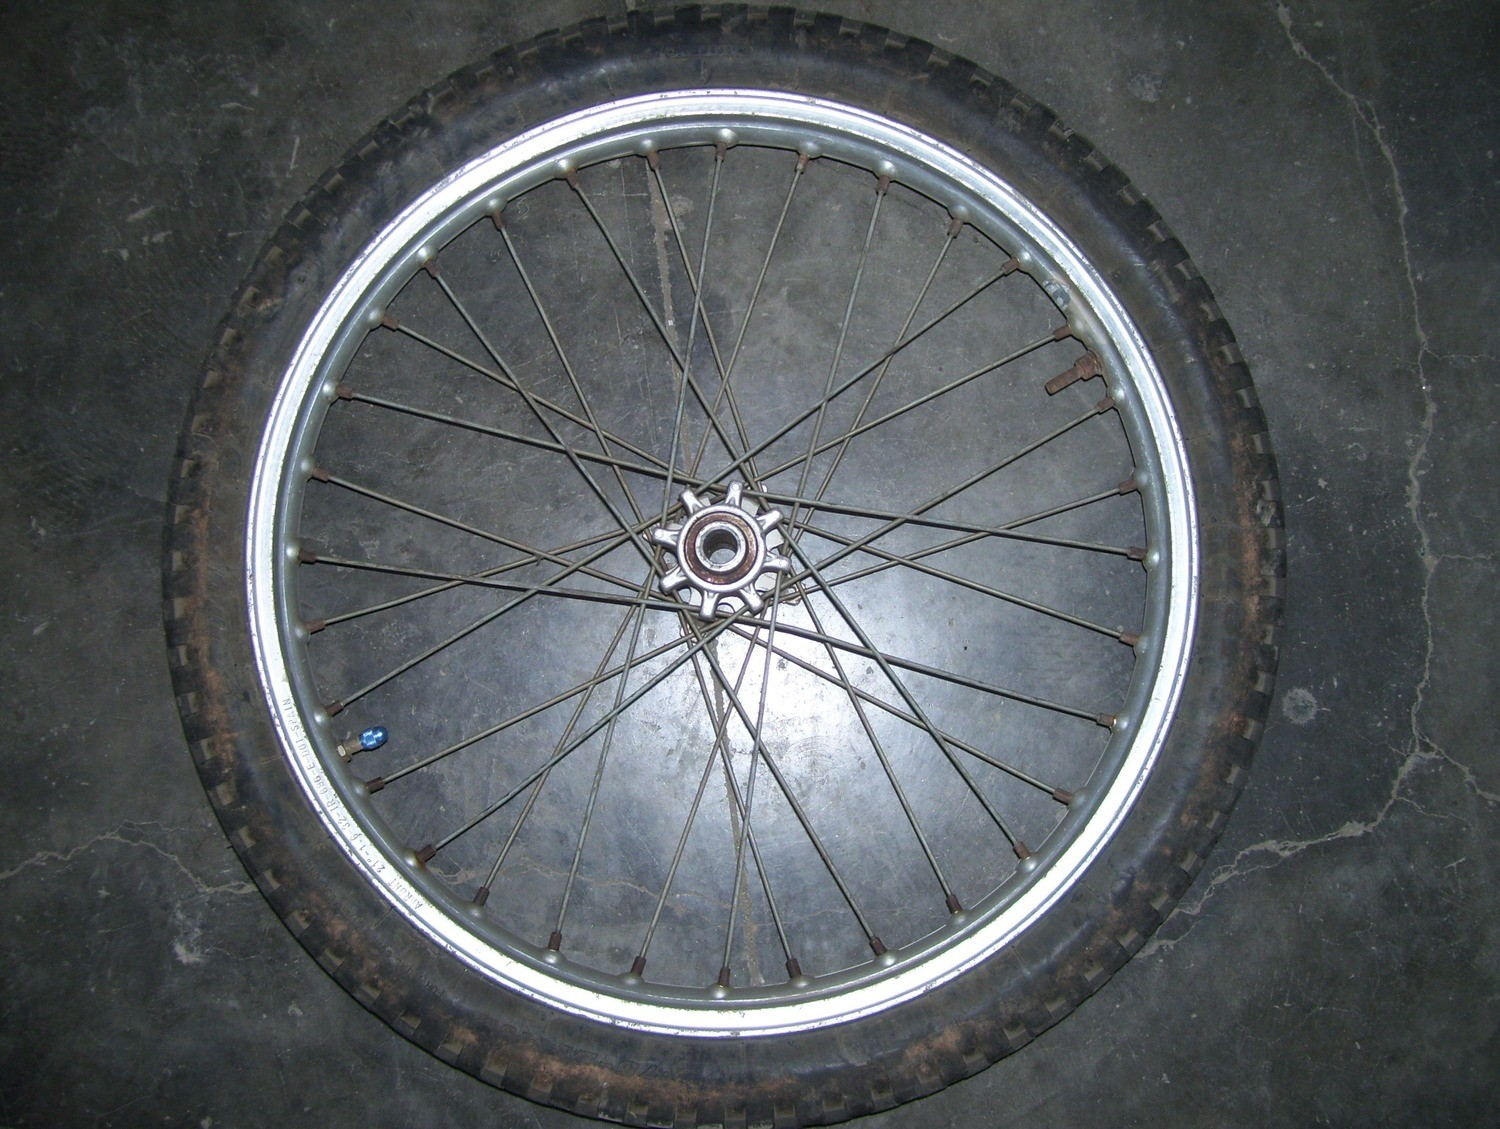 Beta Rev/techno front wheel